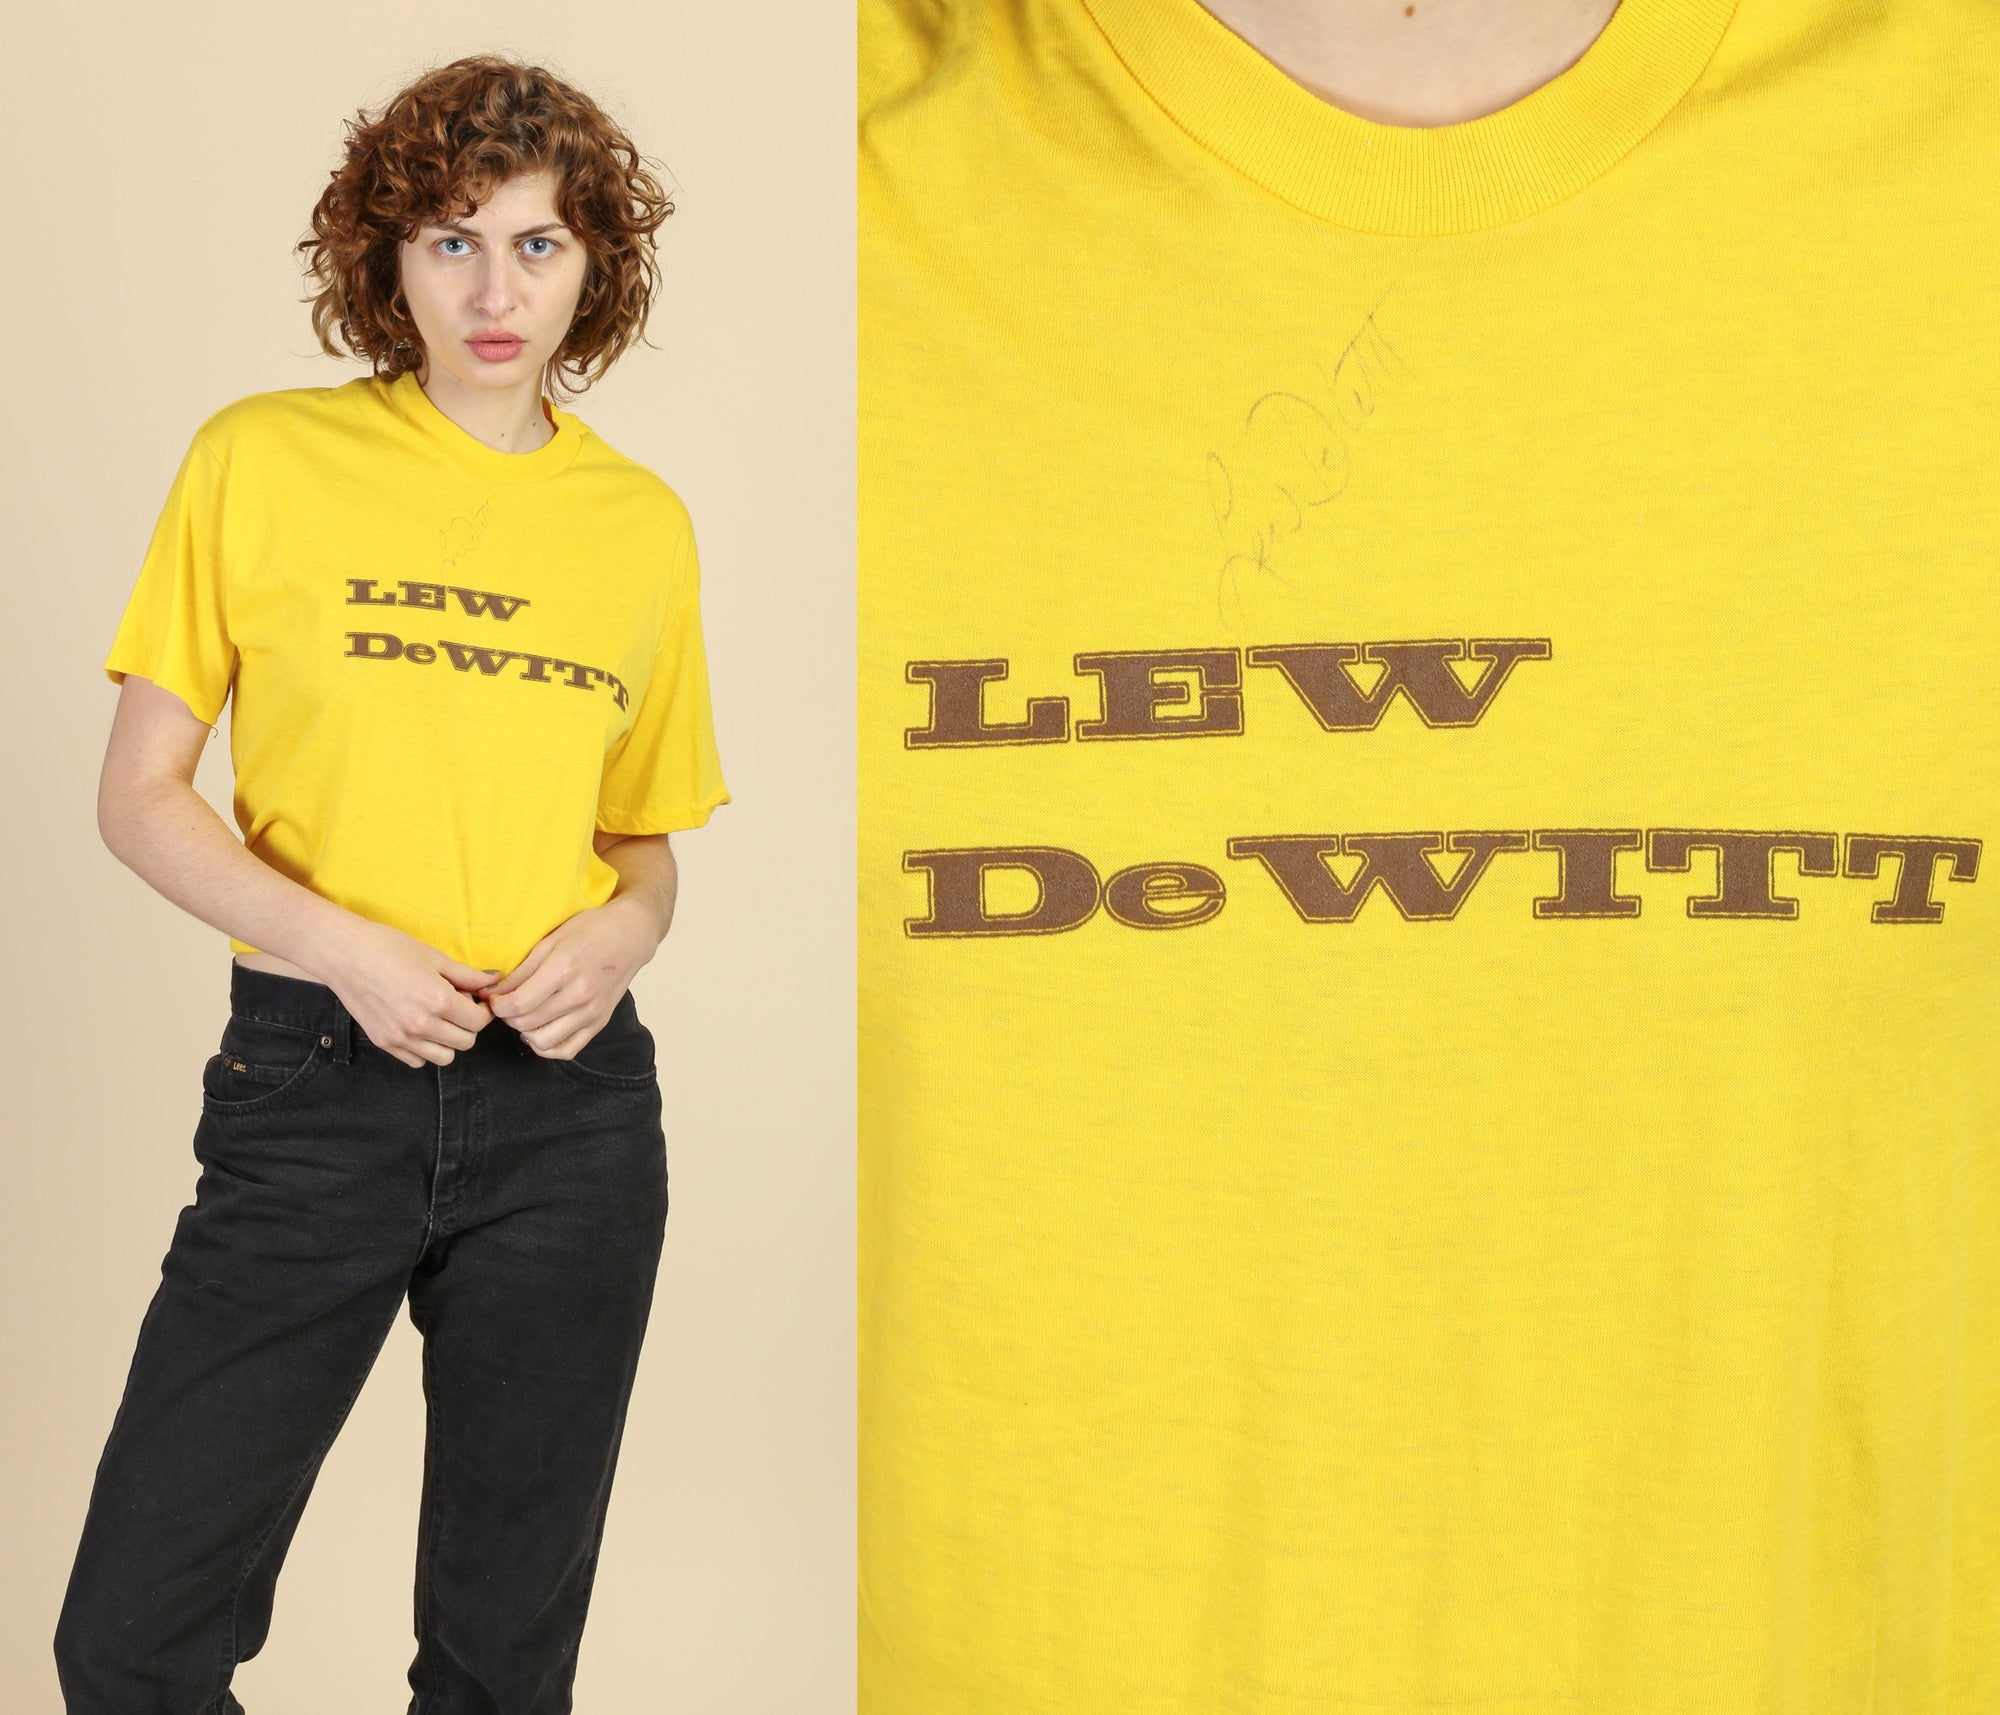 80s Autographed Lew Dewitt T Shirt - Extra Large